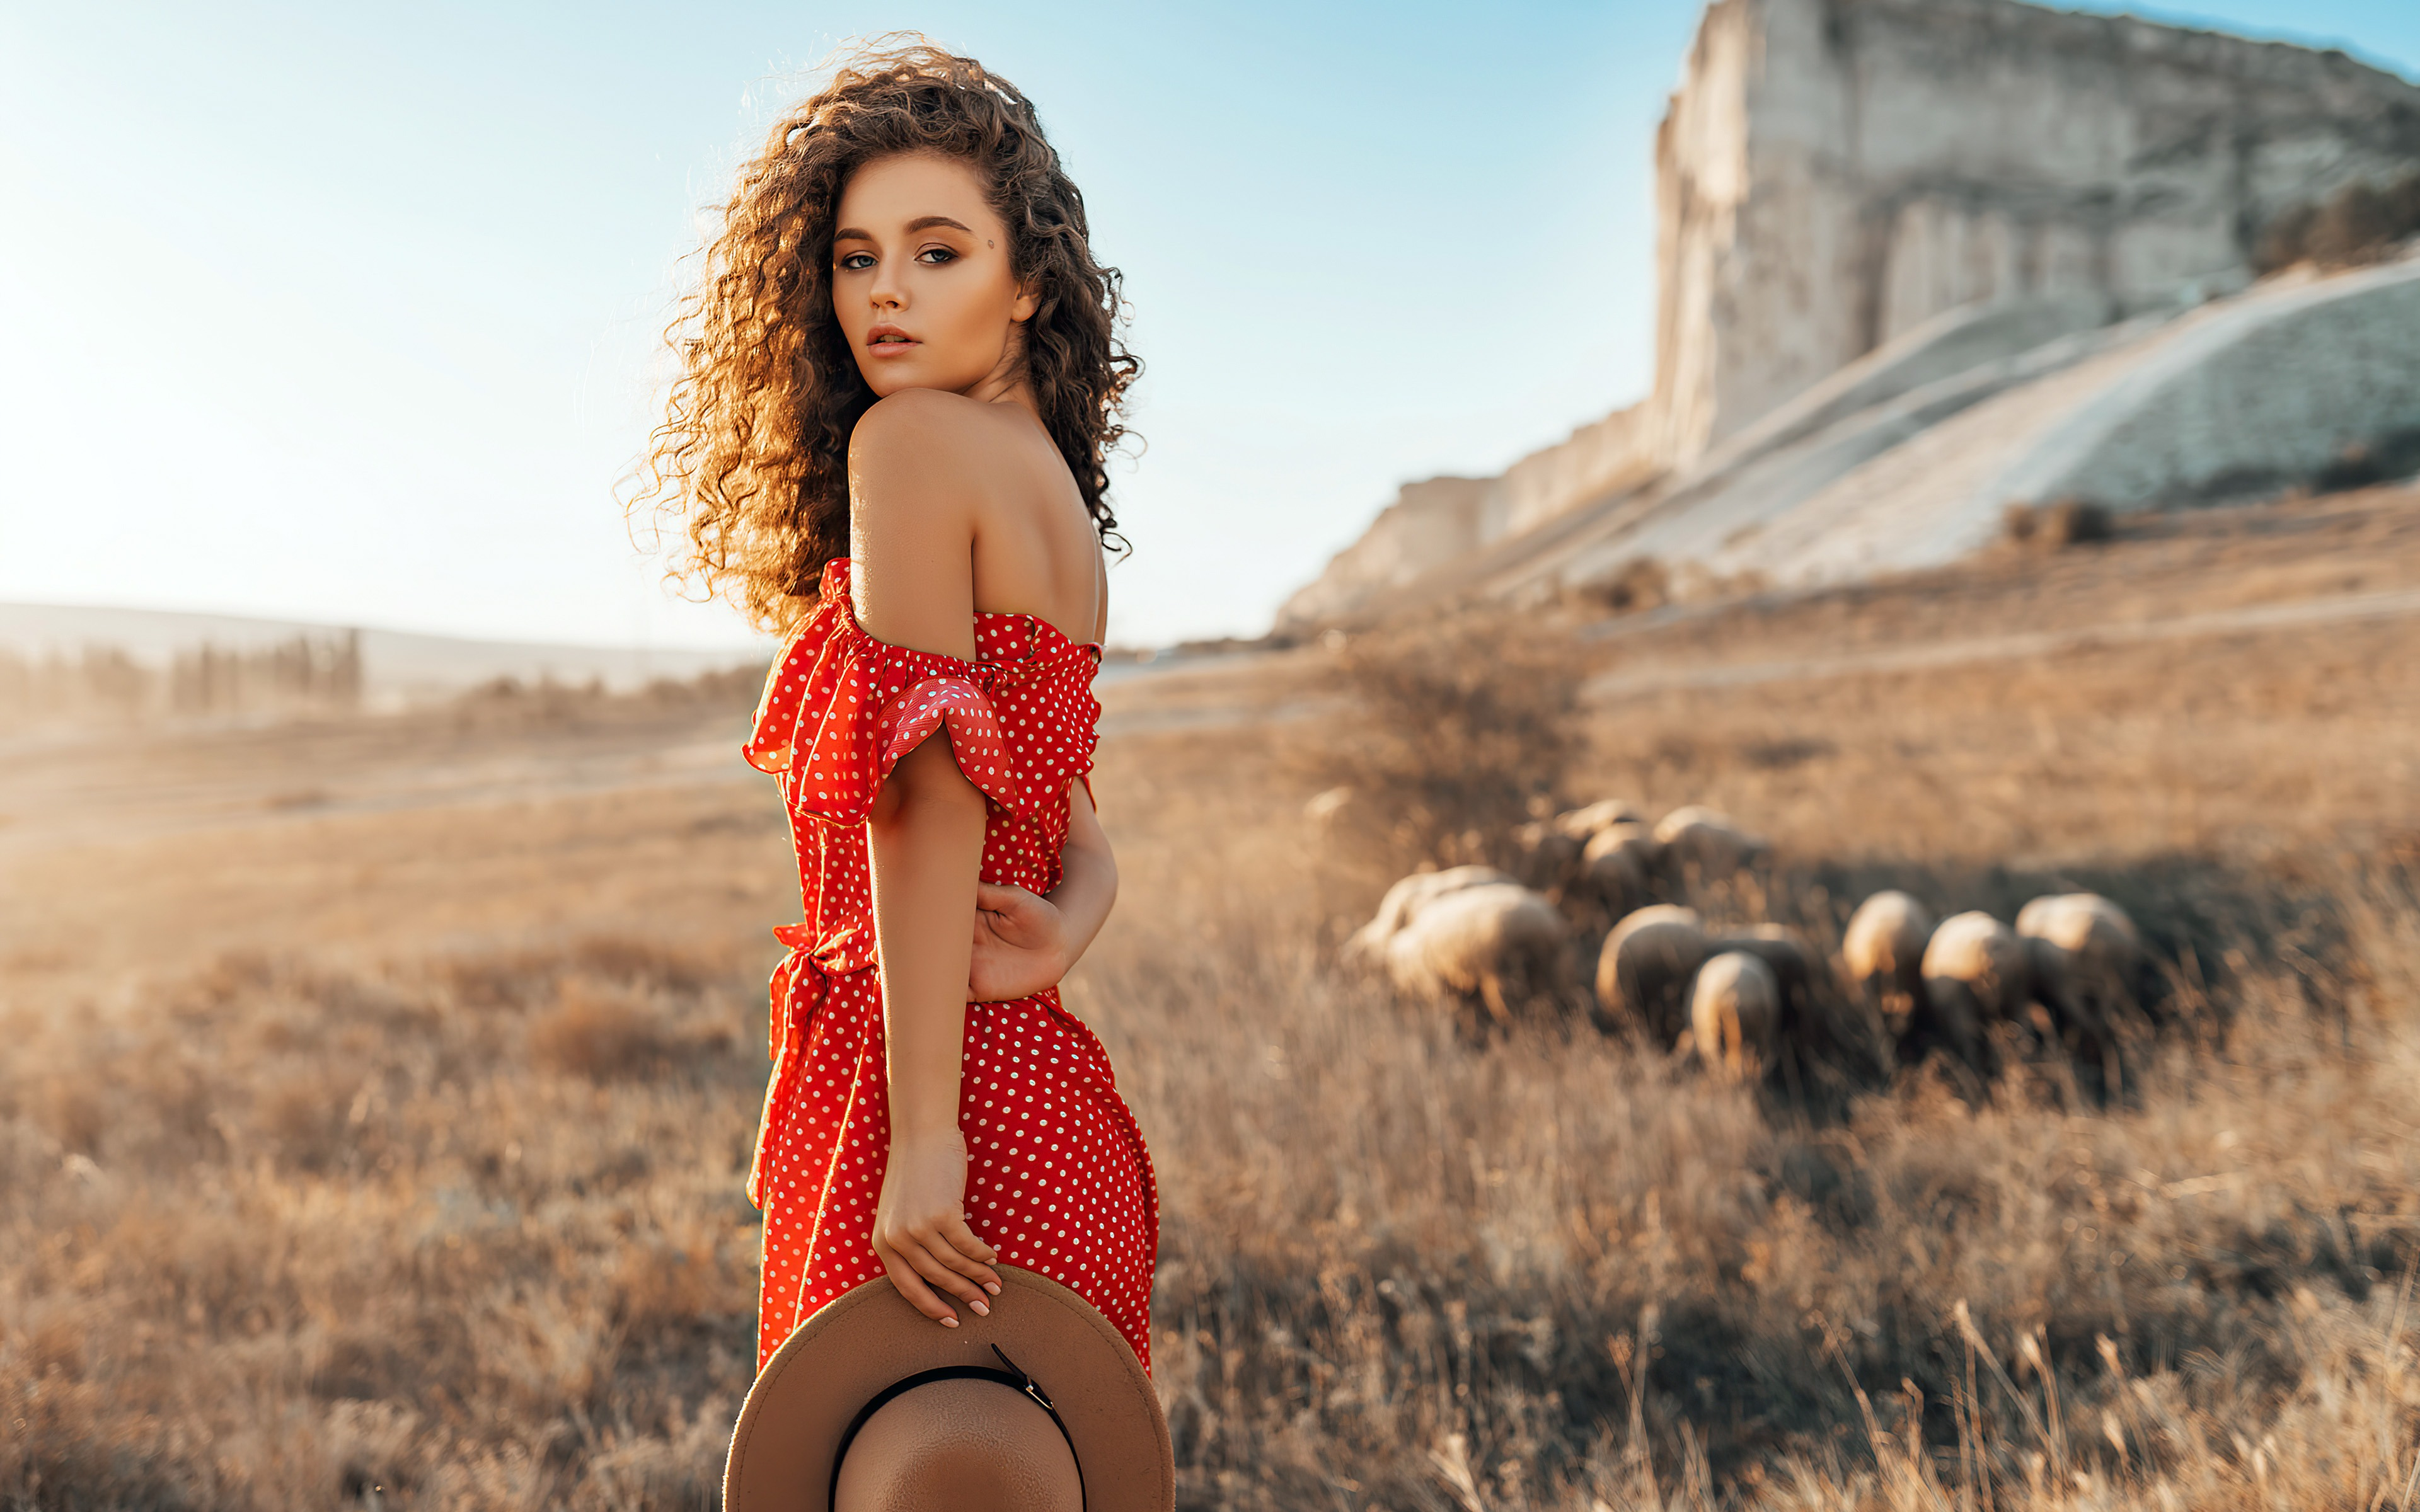 Girl with red polka dot dress wallpaper 3840x2400